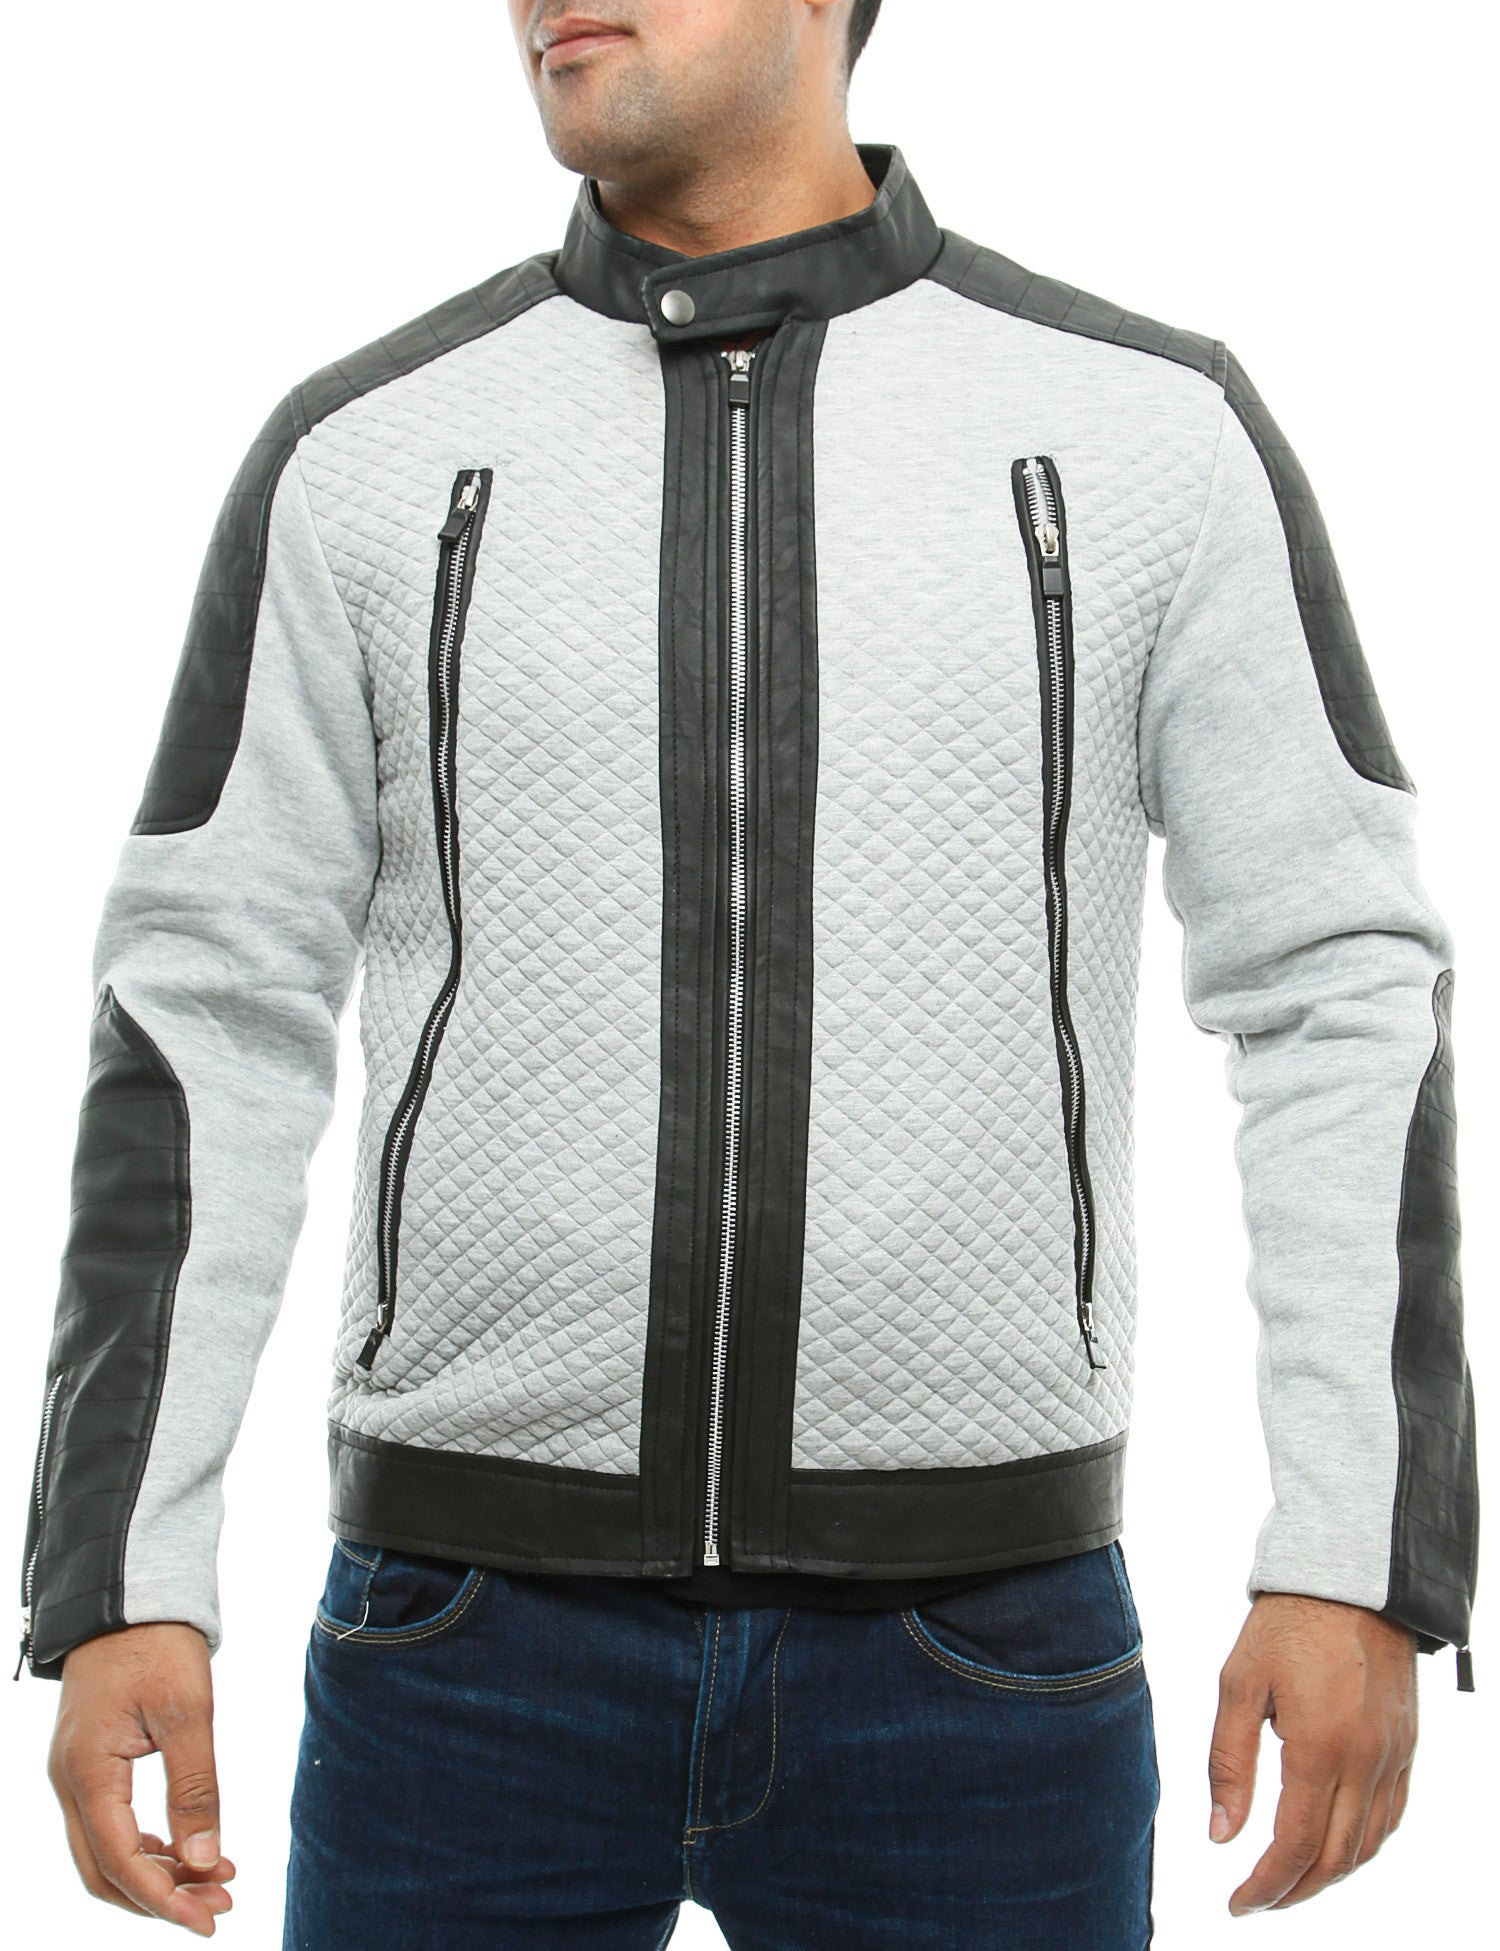 Just Way Jacket 66805 Grey